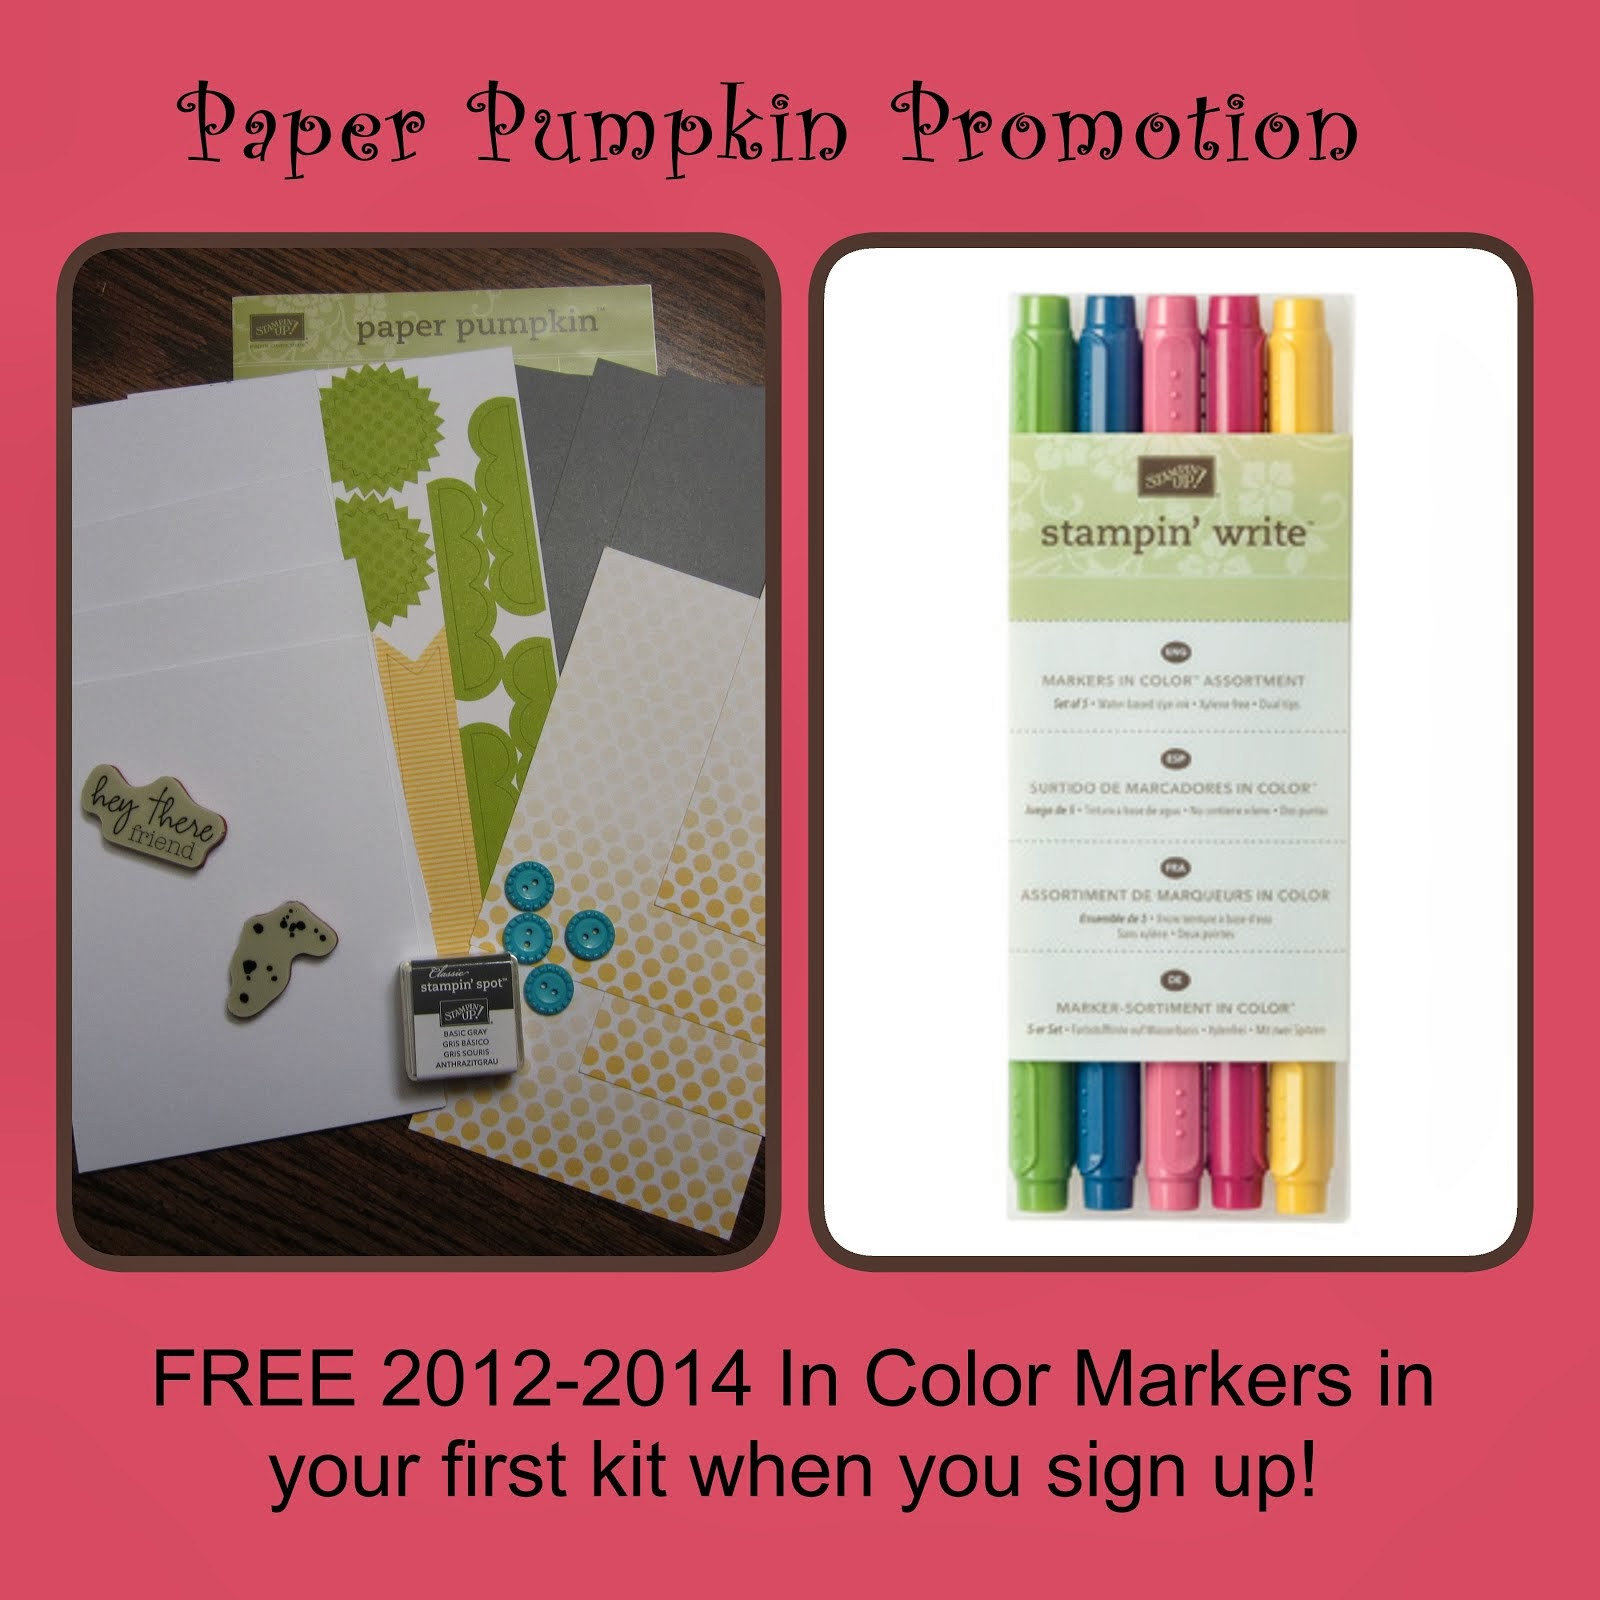 Join Paper Pumpkin by March 31, 2013 ~ Receive a FREE set of Markers